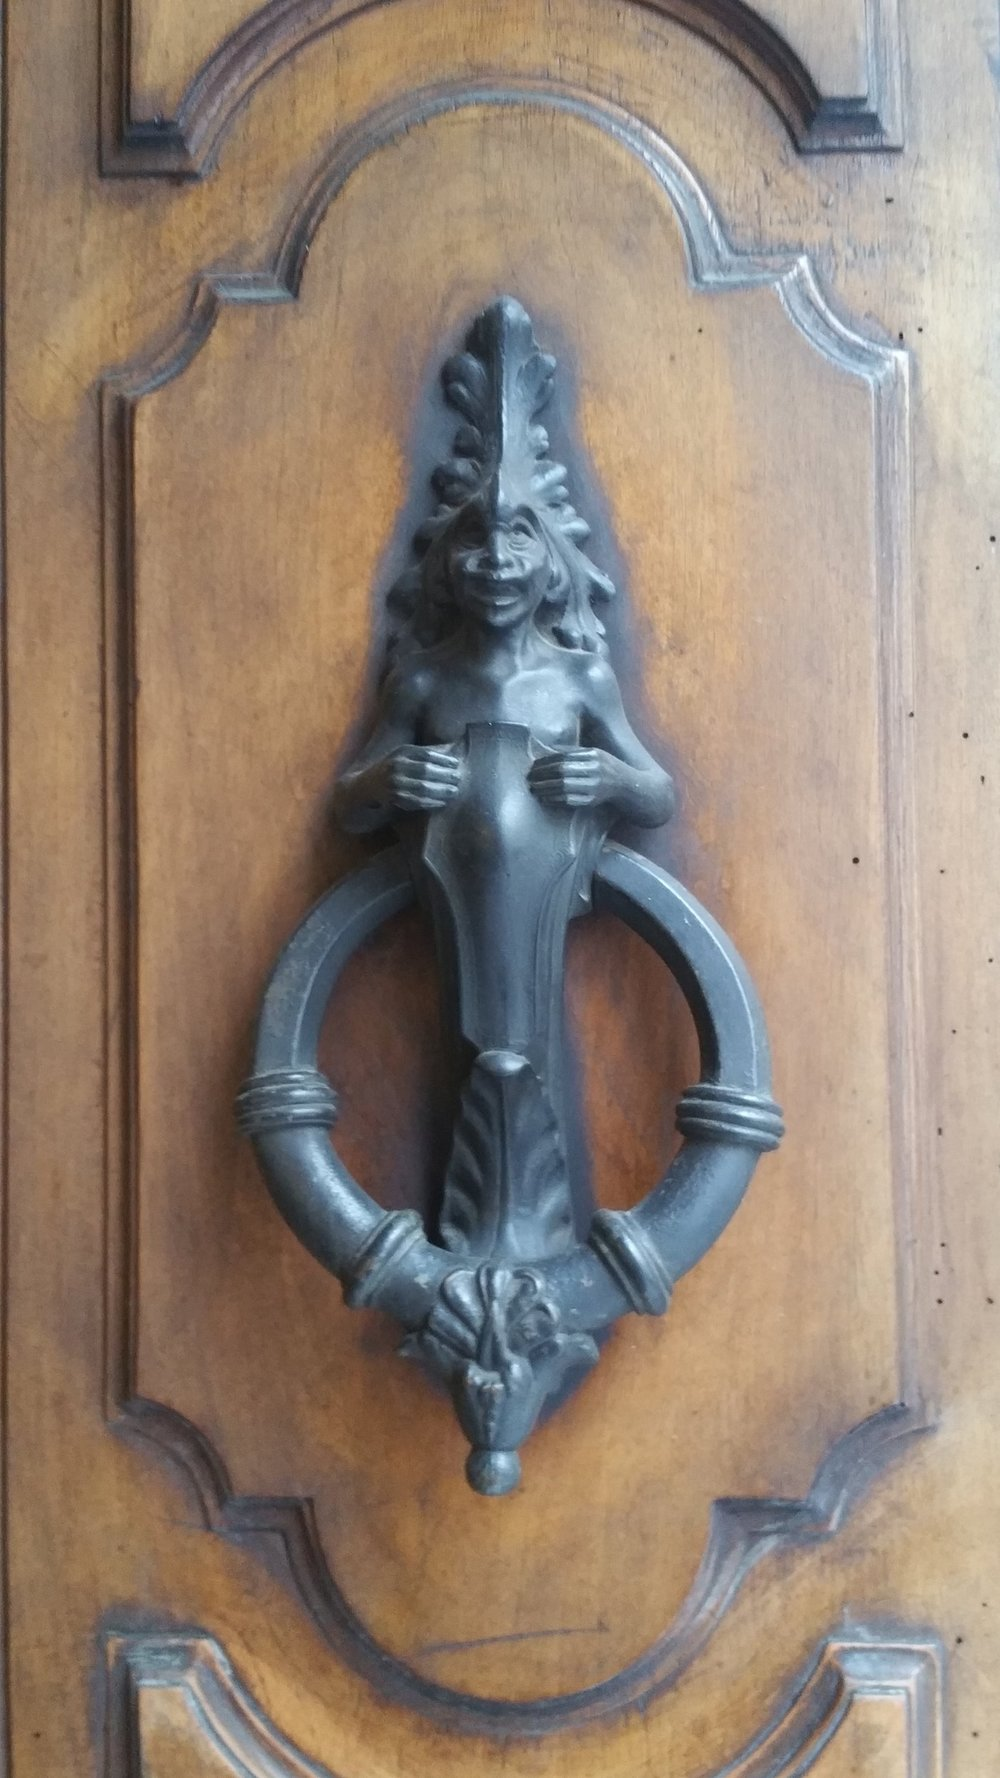 doorknocker.jpg